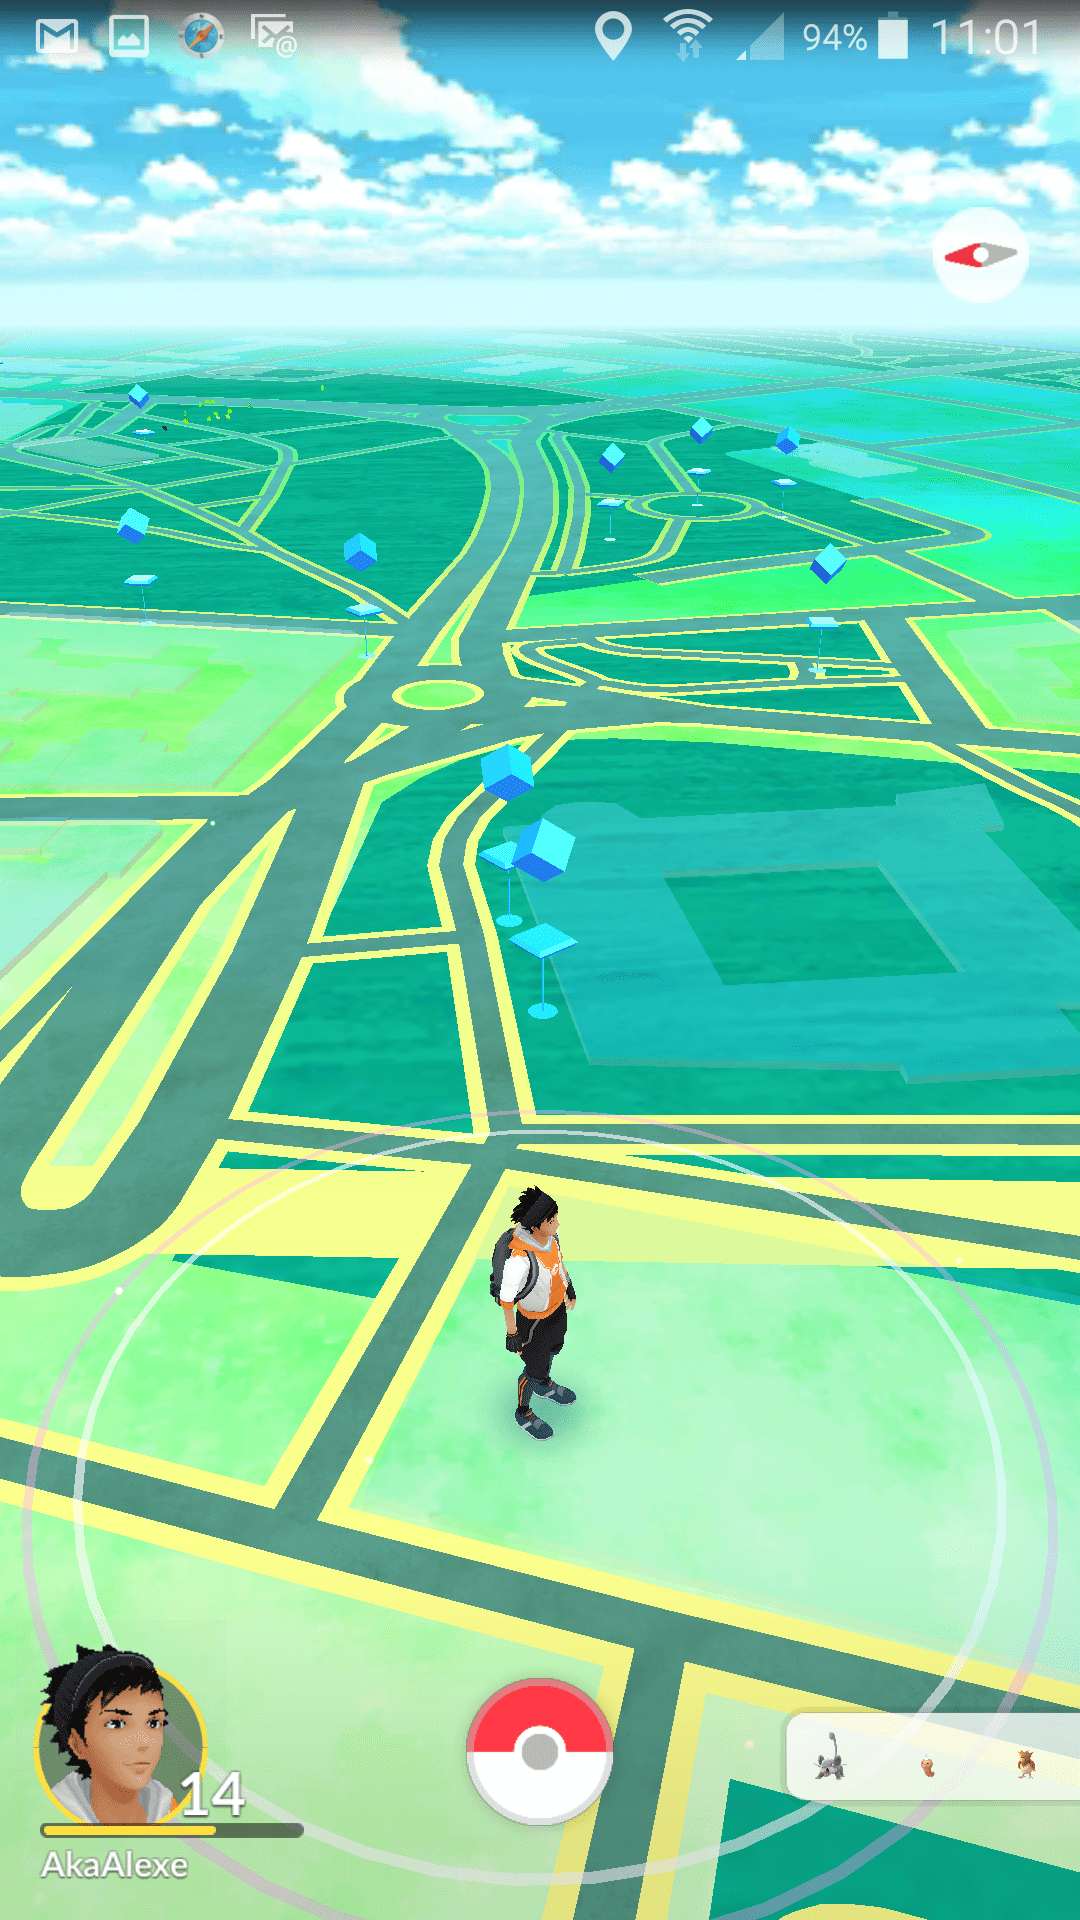 see how much you walked playing Pokémon Go